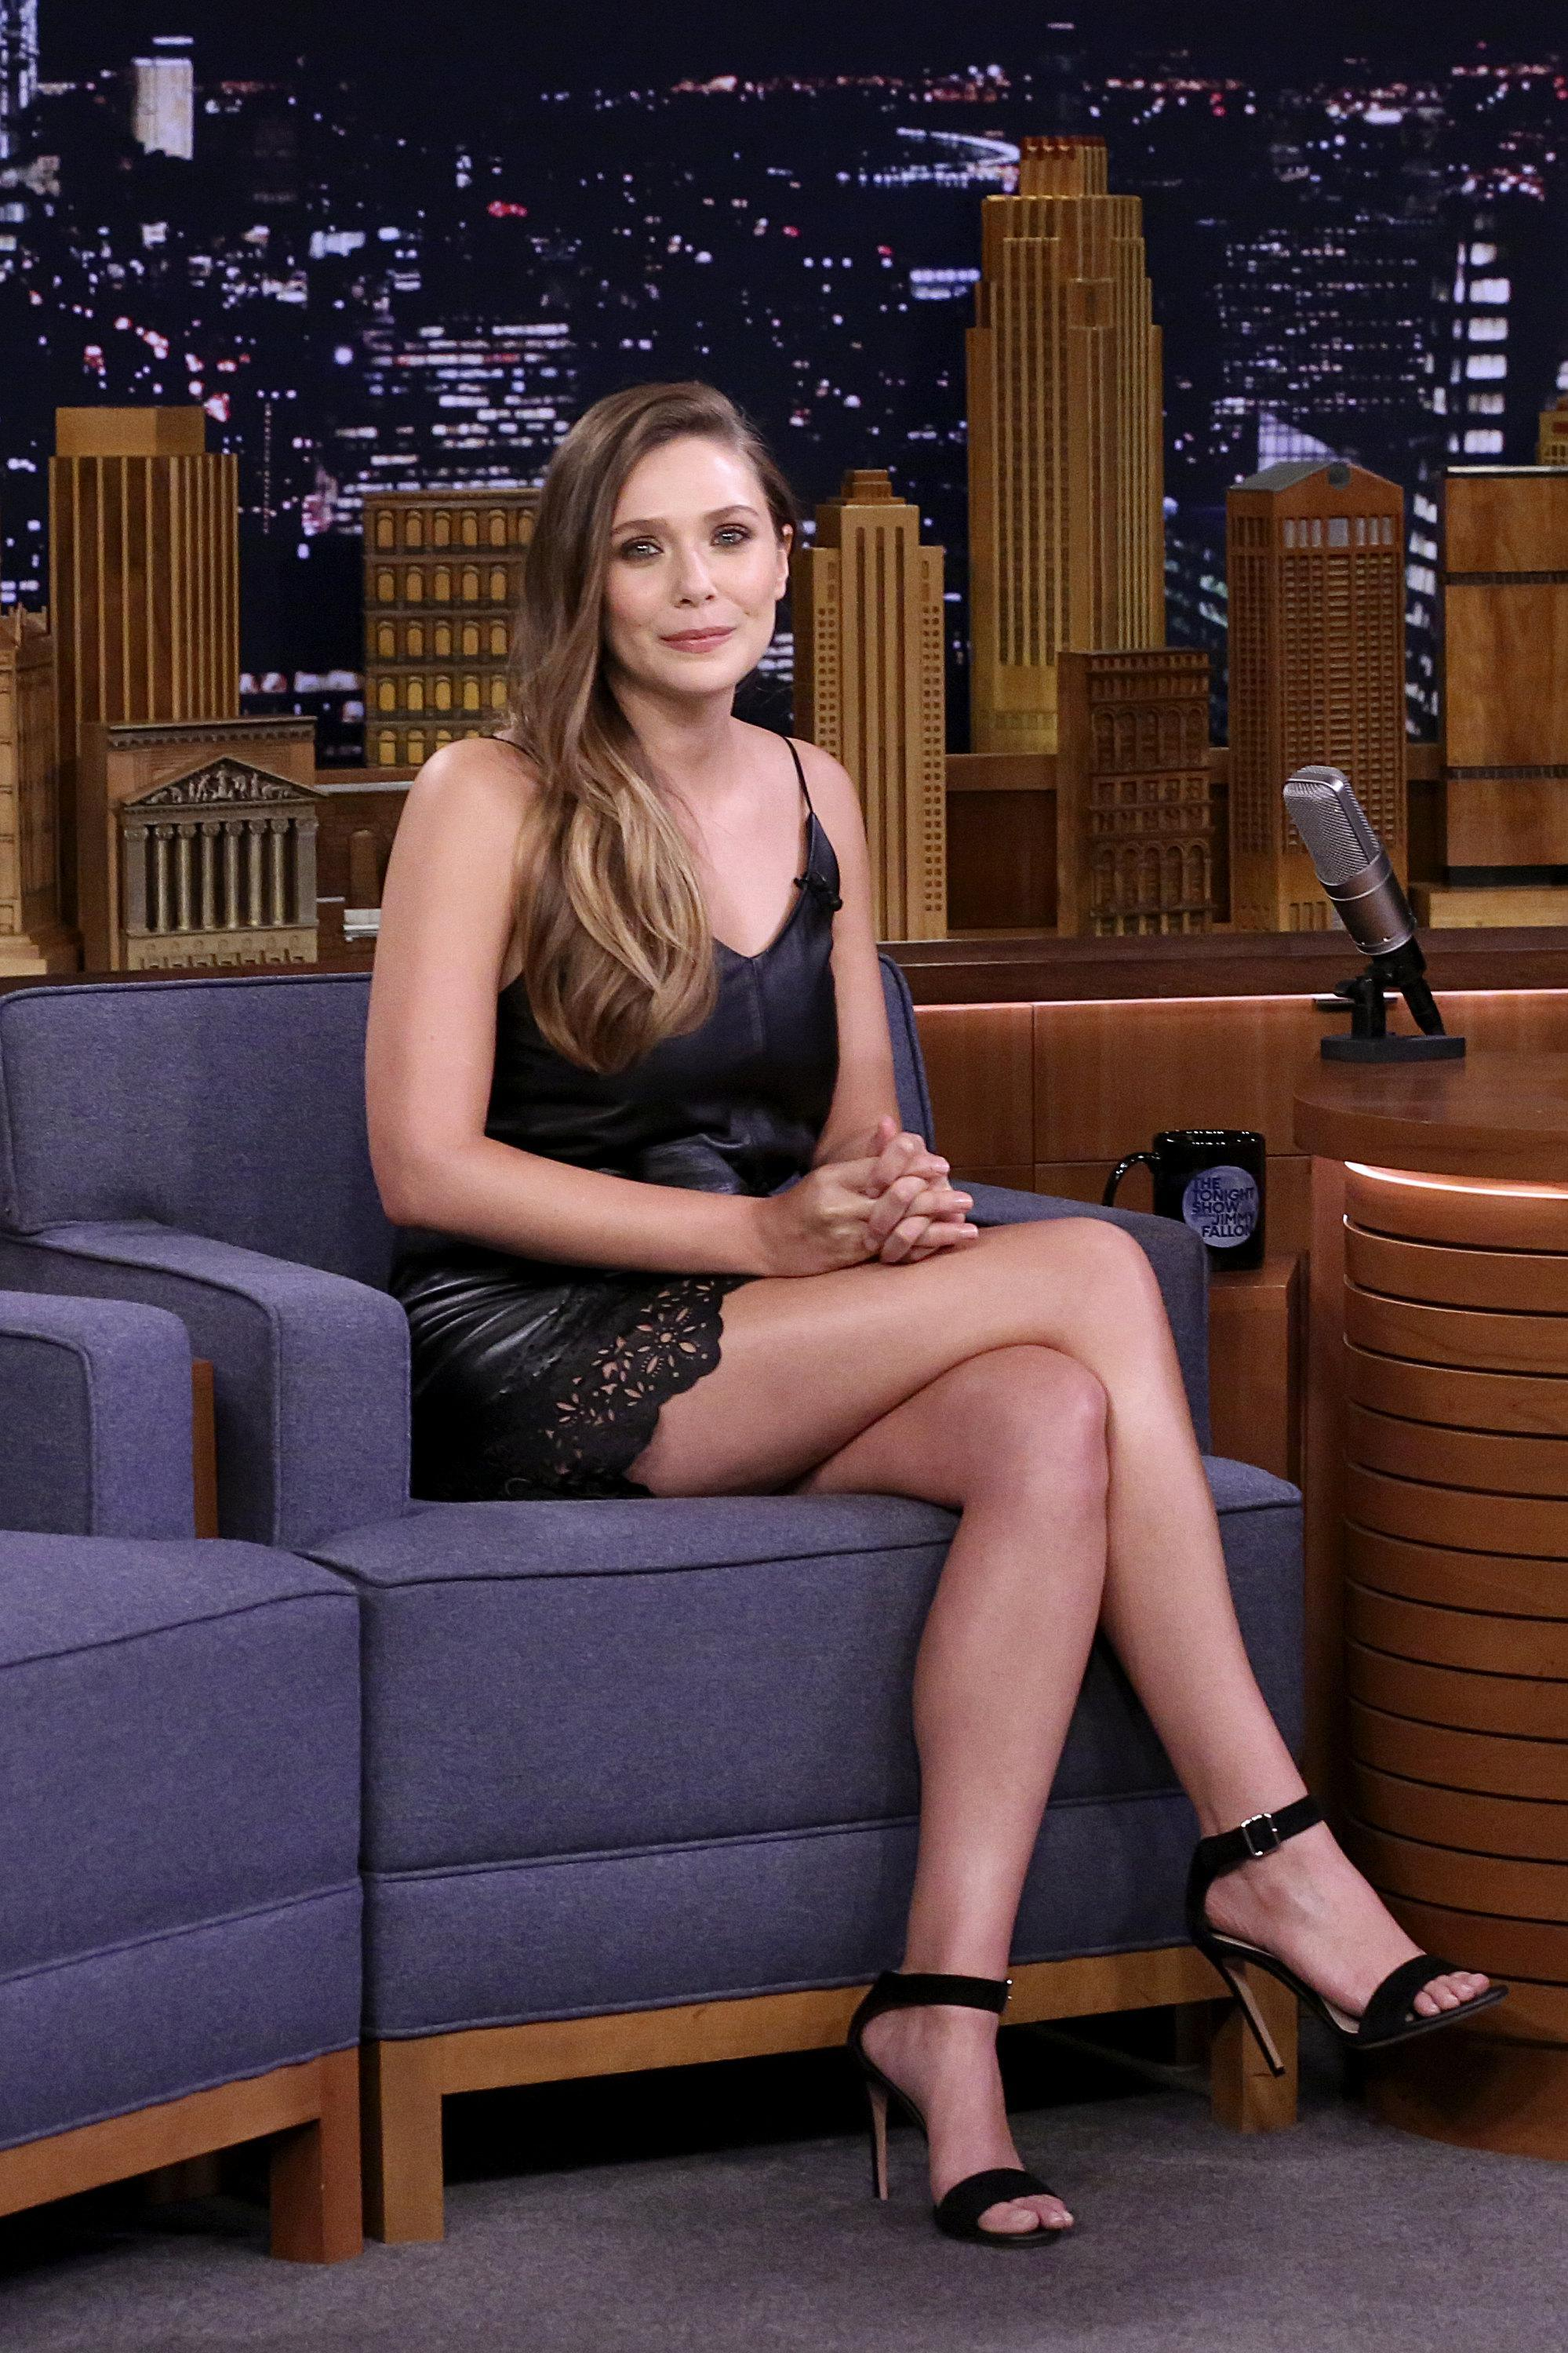 49 Sexy Elizabeth Olsen Feet Pictures That Are Sure To Make You Her Biggest Fan-6086